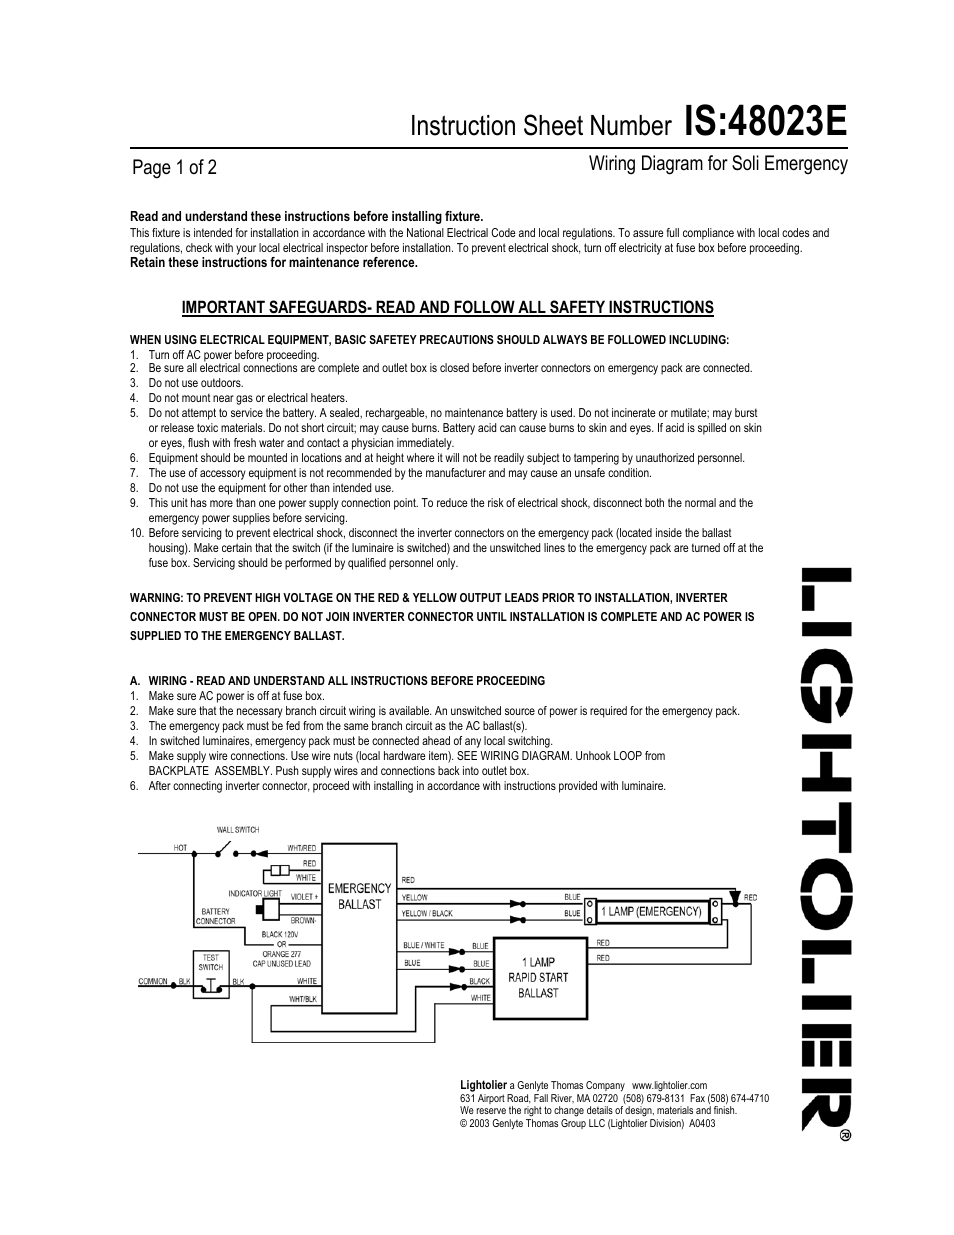 Lightolier Wiring Diagram Layout Diagrams Emergency Switch For Soli 48023e User Manual 2 Rh Manualsdir Com Easyset Dimmer